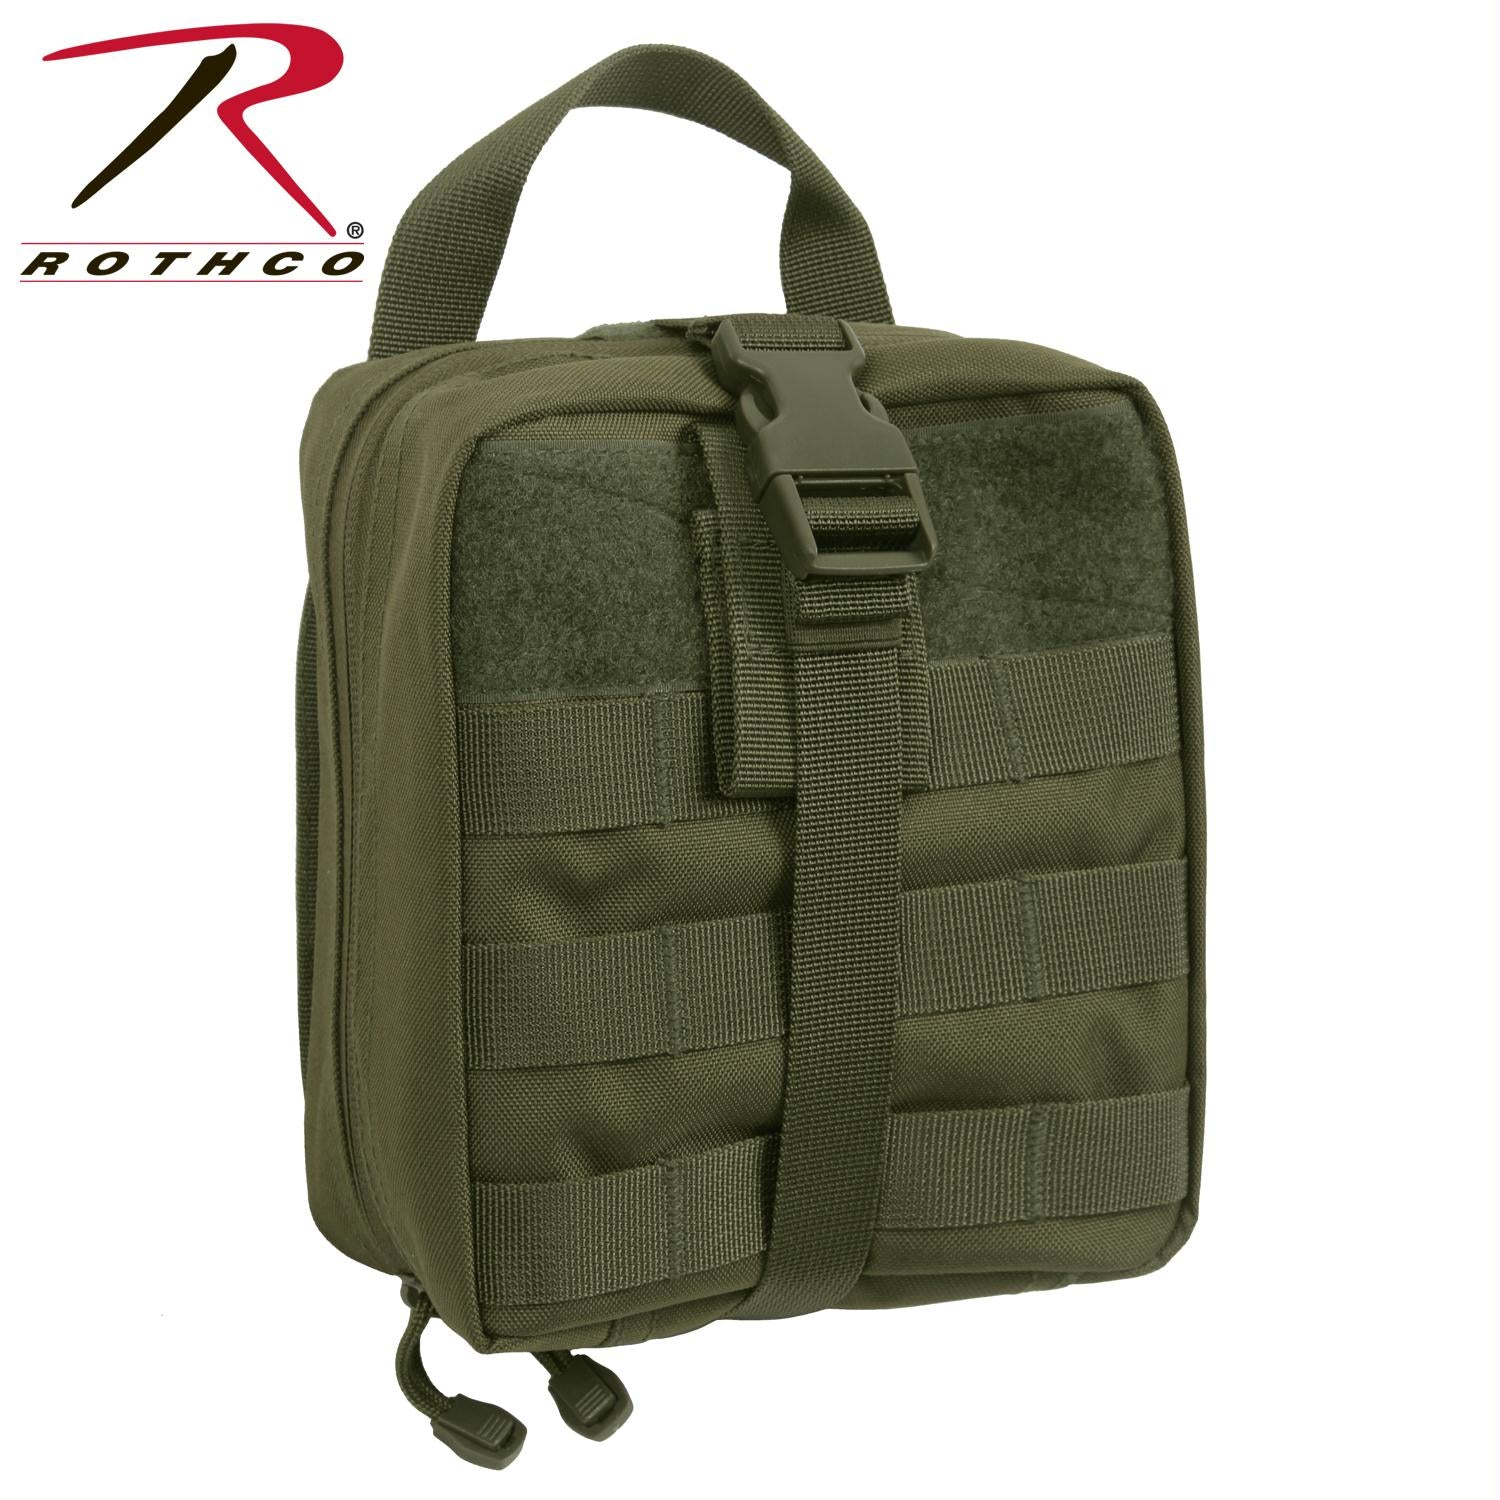 Rothco Tactical Breakaway Pouch - Olive Drab